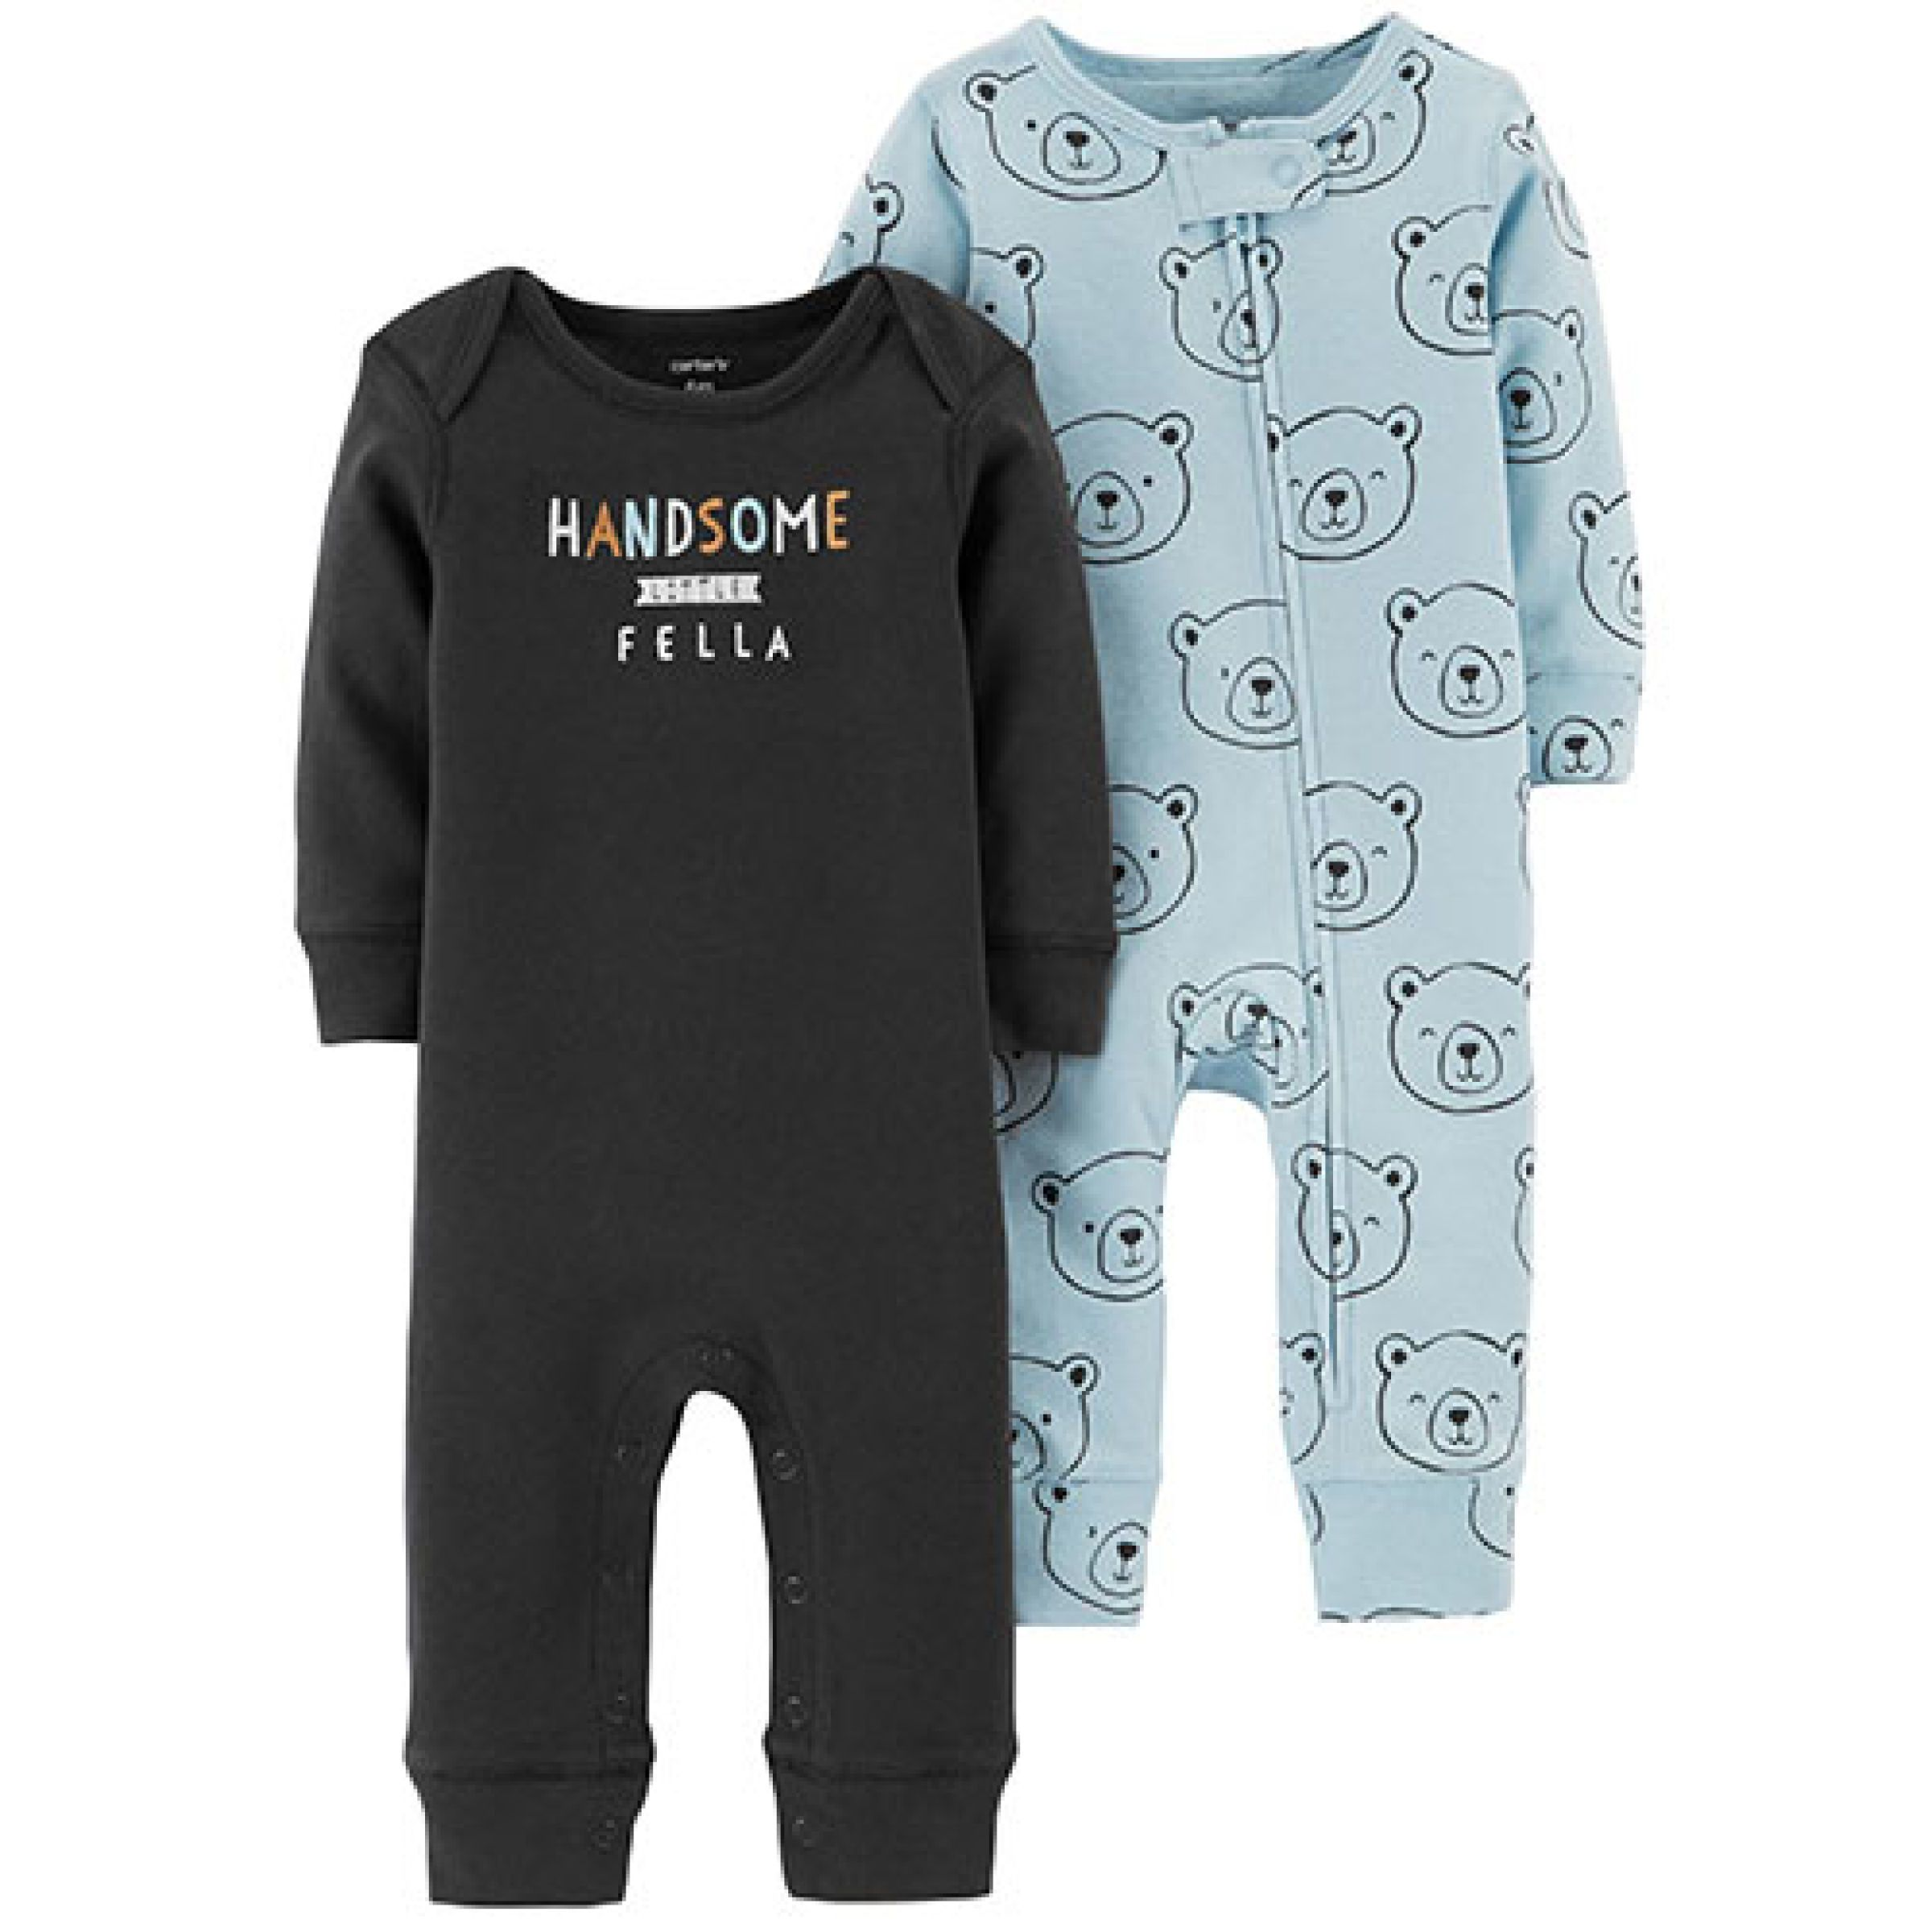 b4c9adfe5 Baby Boy (0-9M) Carter s  Handsome Fella Bear Coverall Set